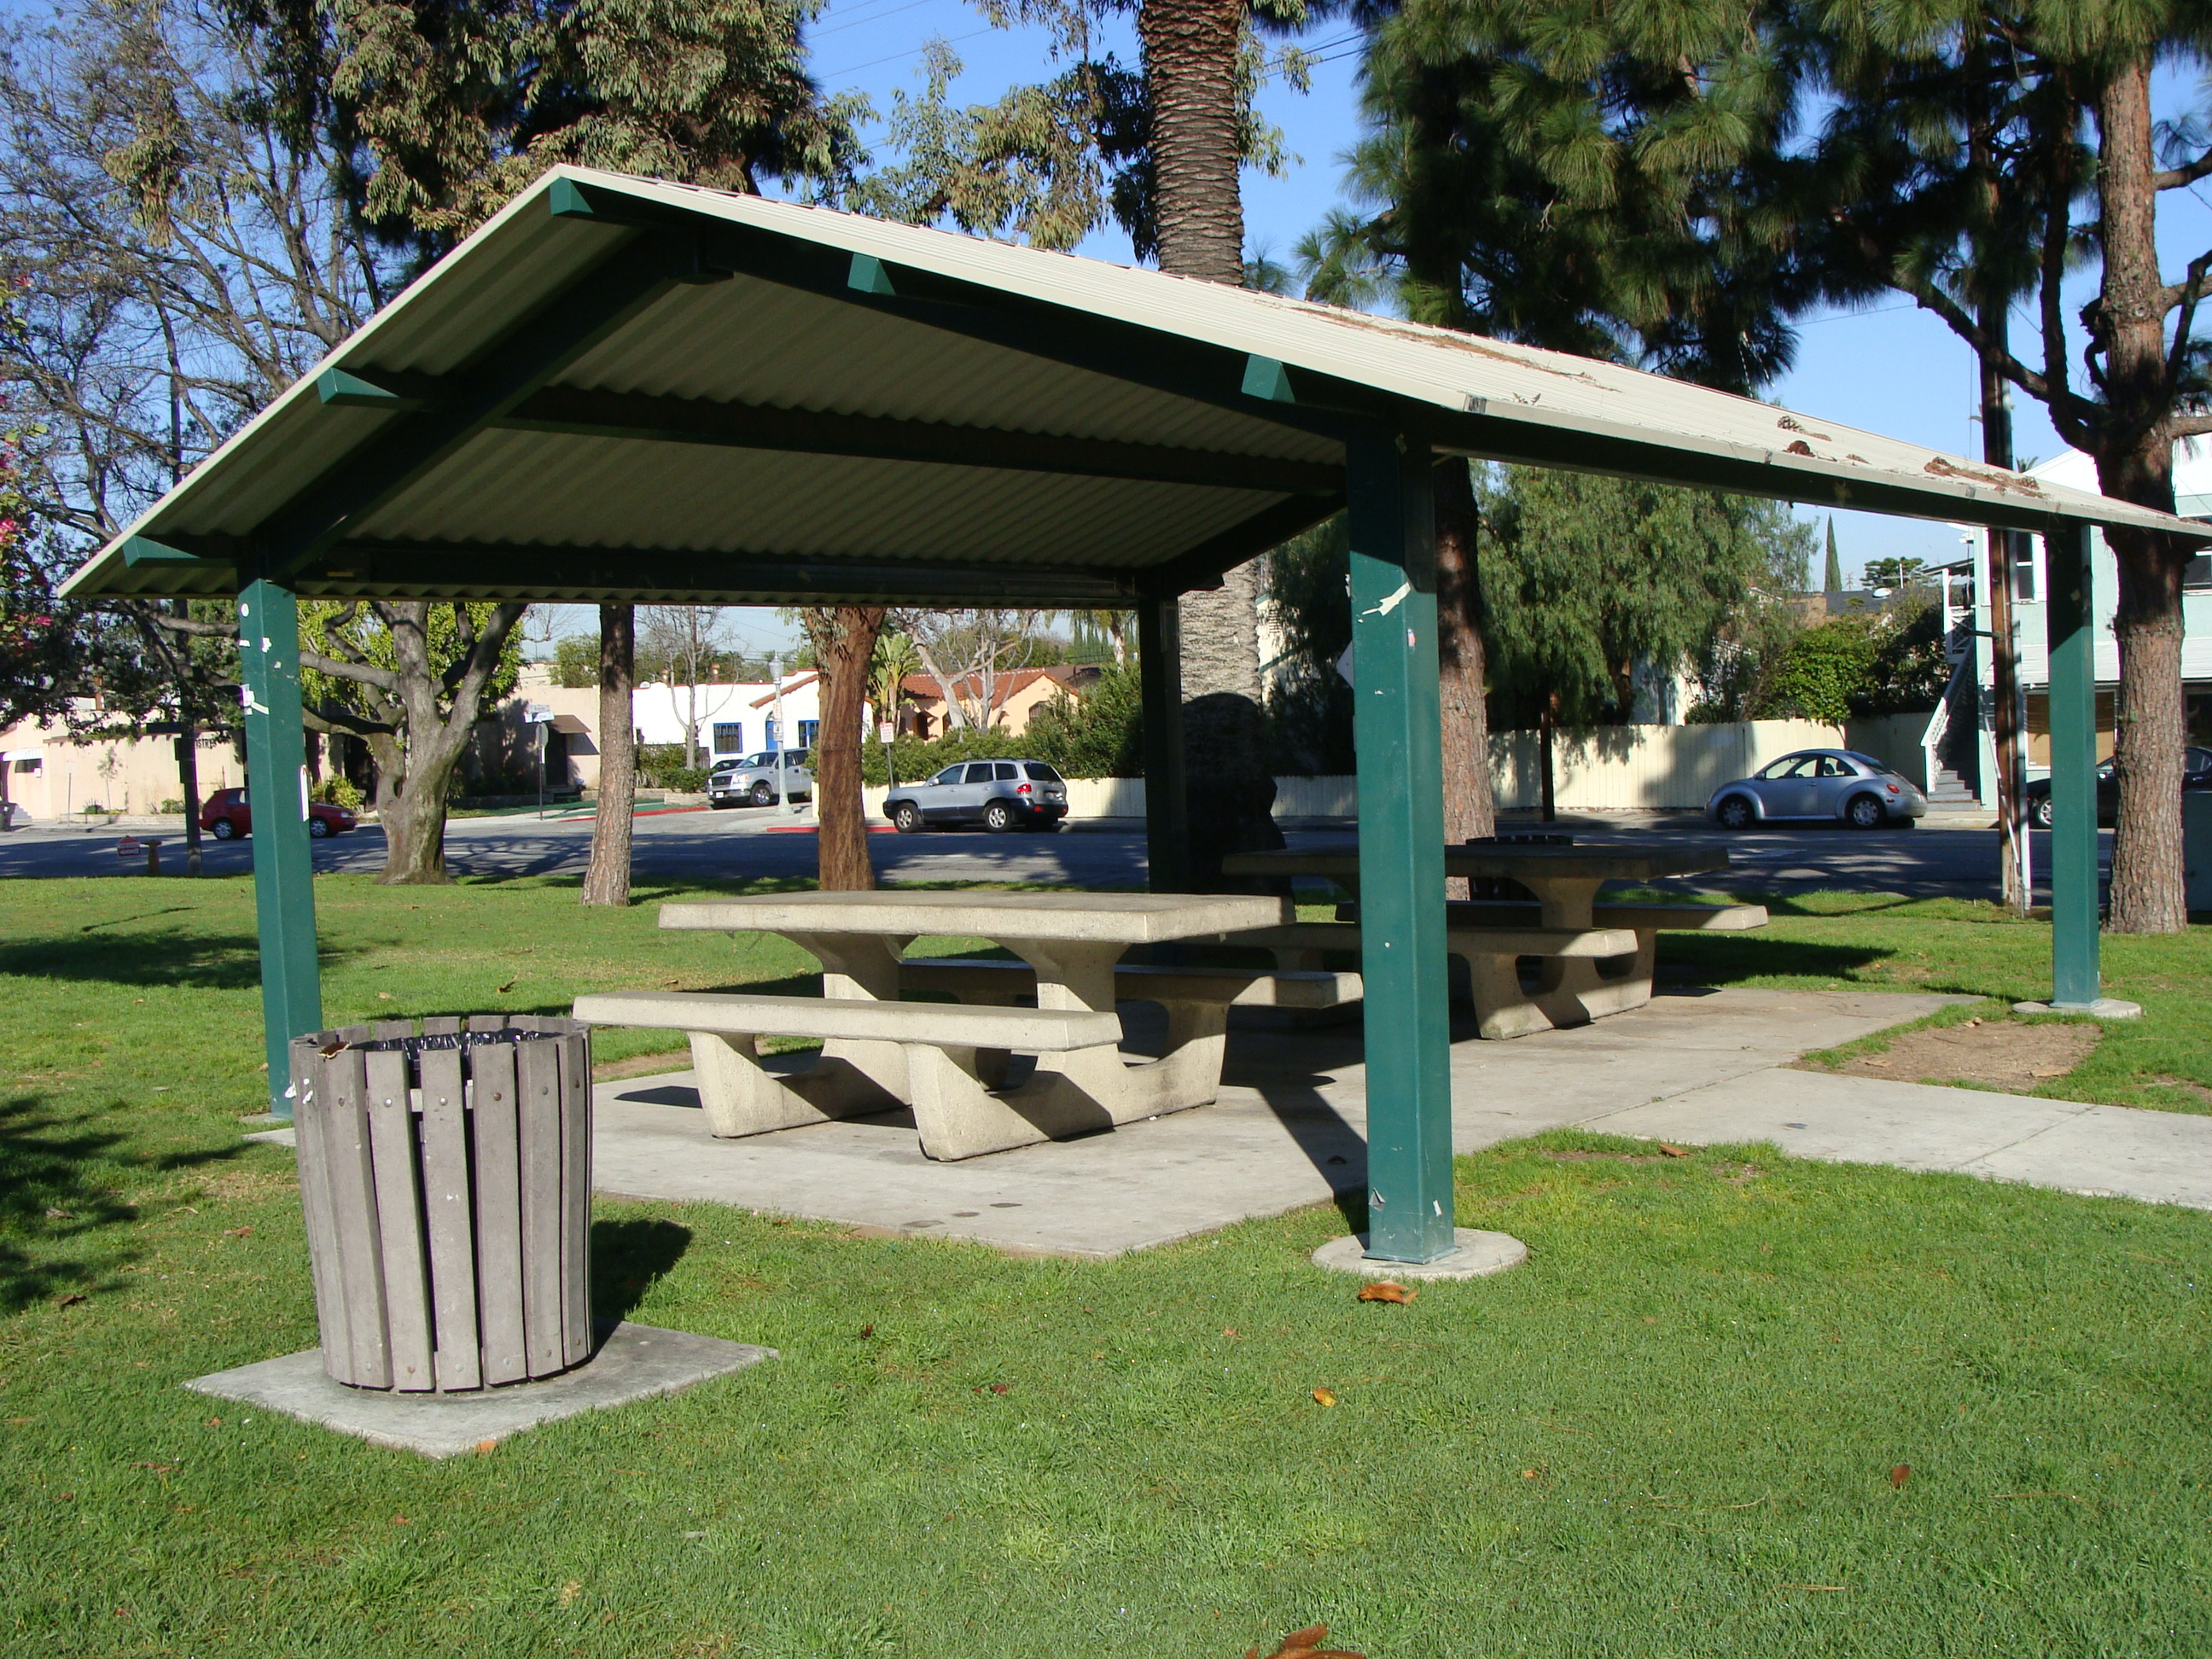 Outdoor shelter at Reservoir Park